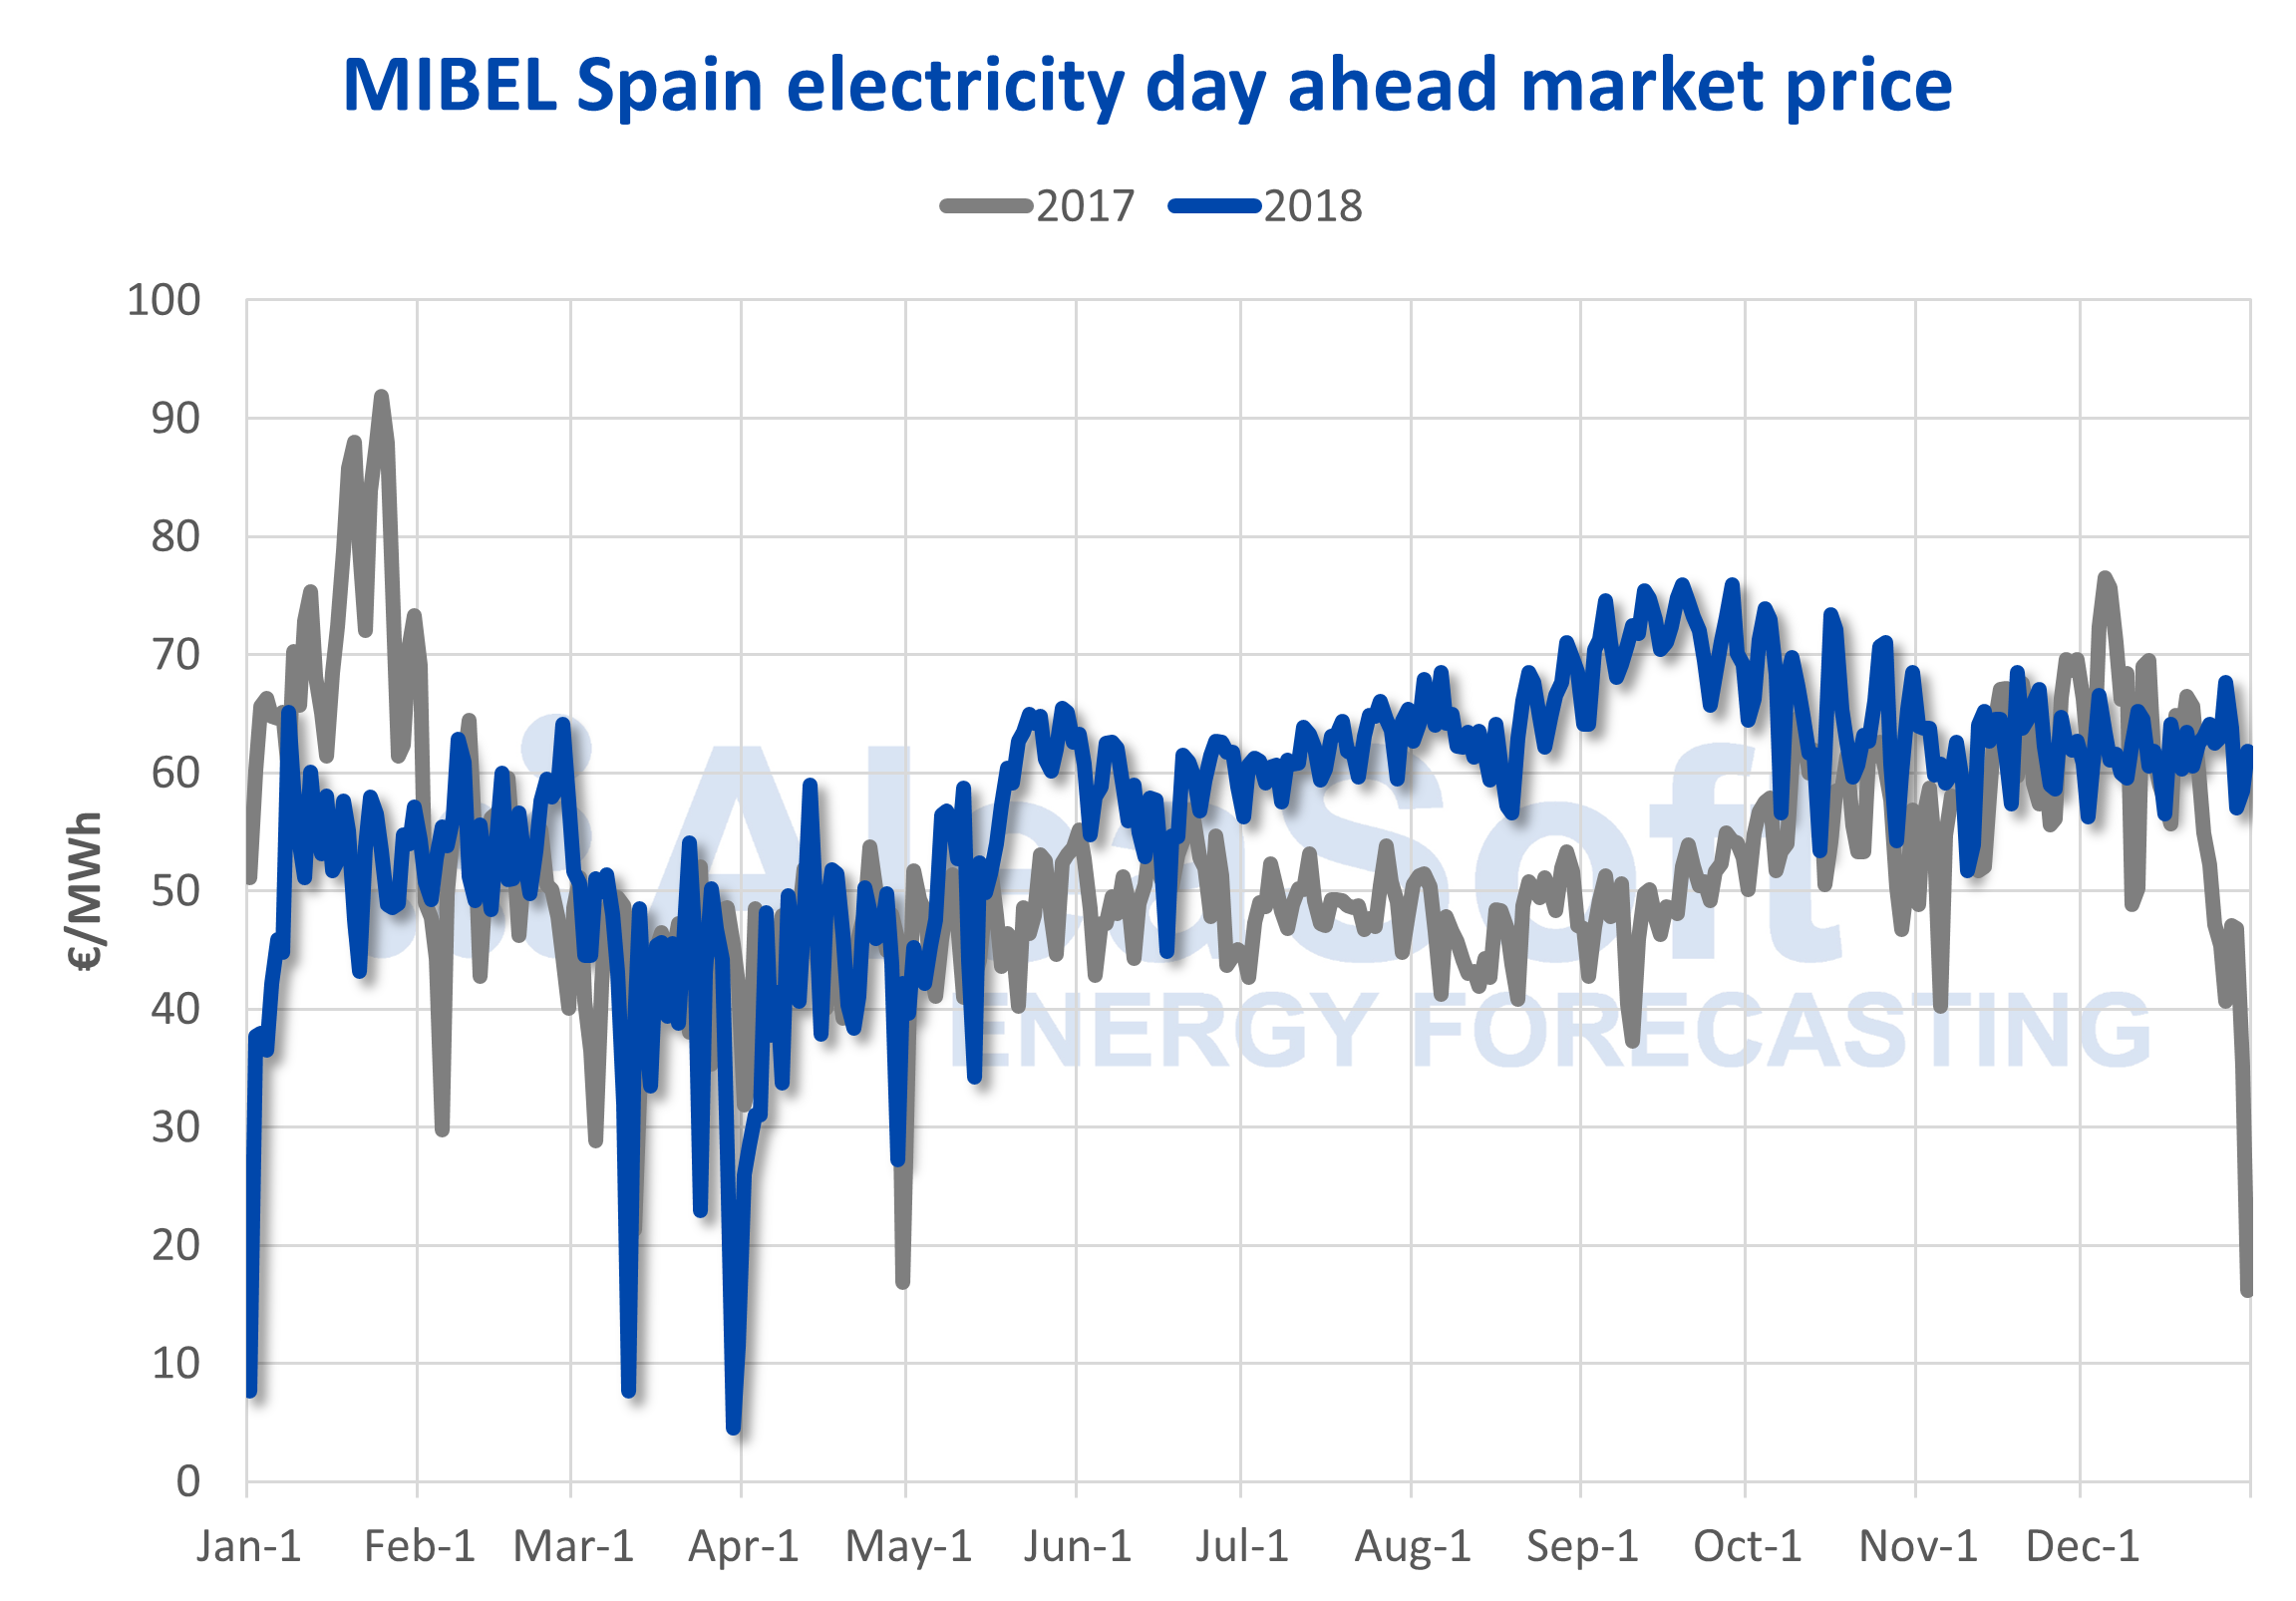 AleaSoft - MIBEL Spain electricity market price